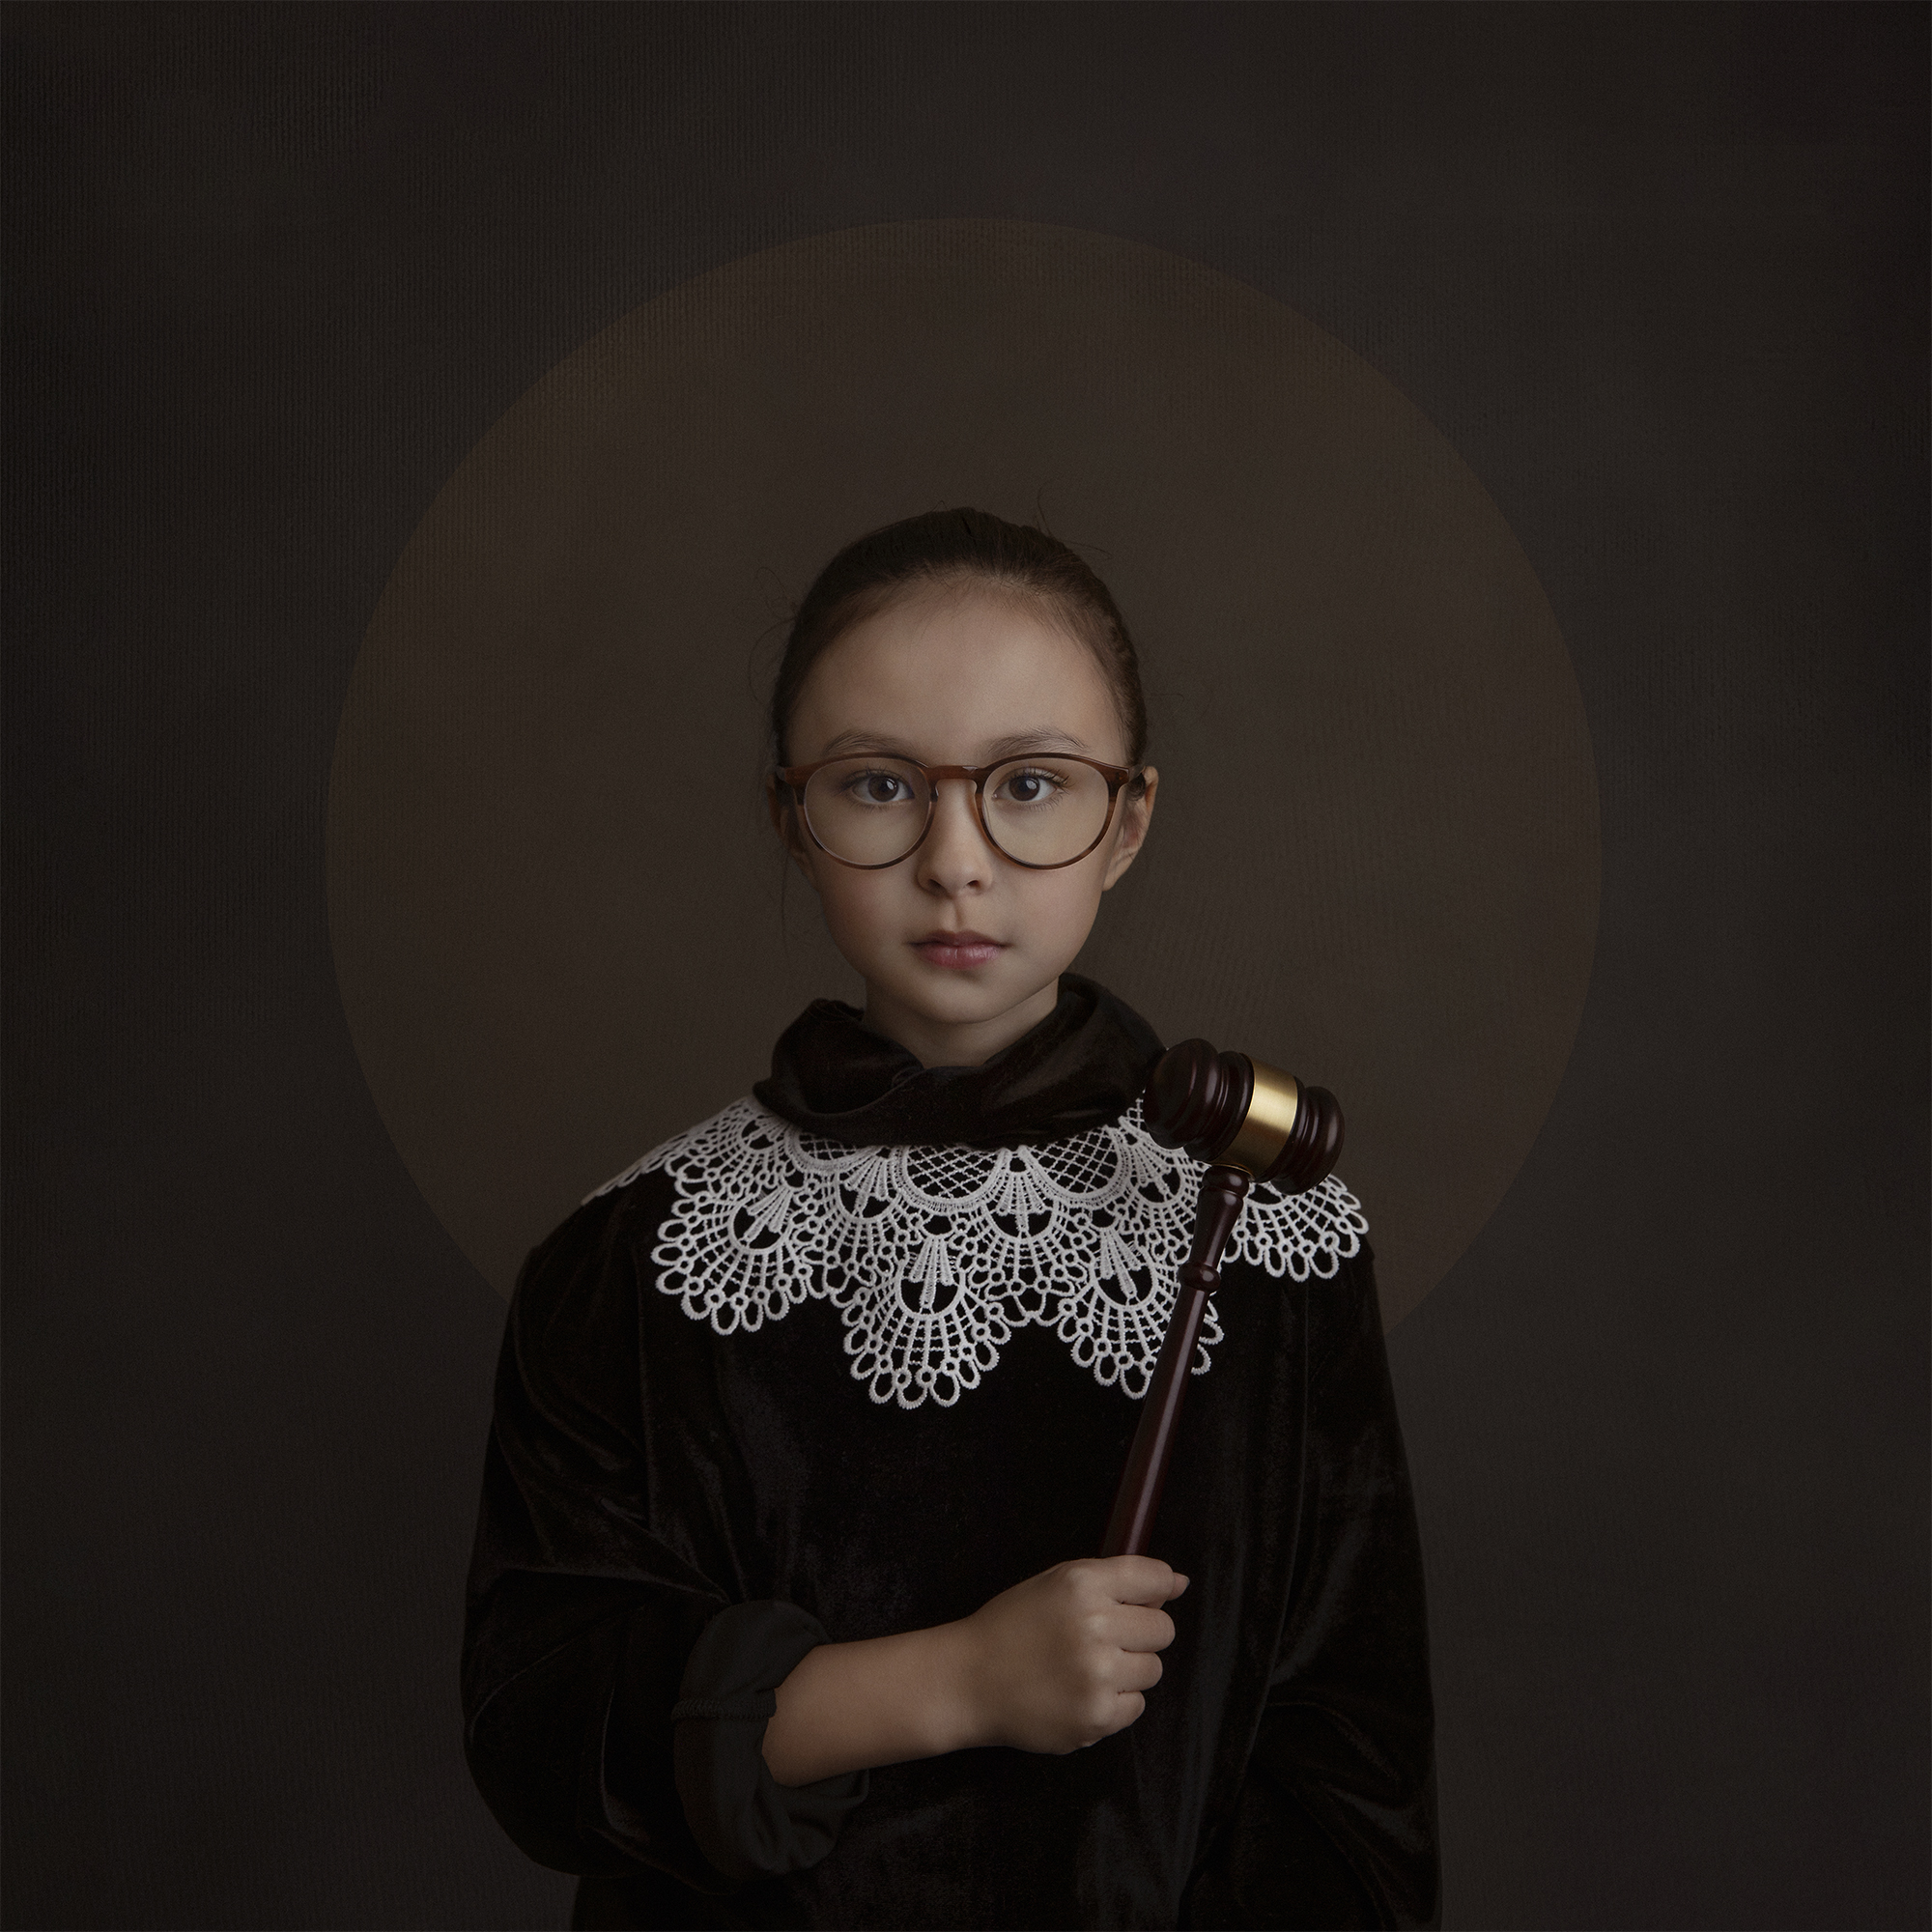 Young girl dressed as Ruth Bader Ginsburg